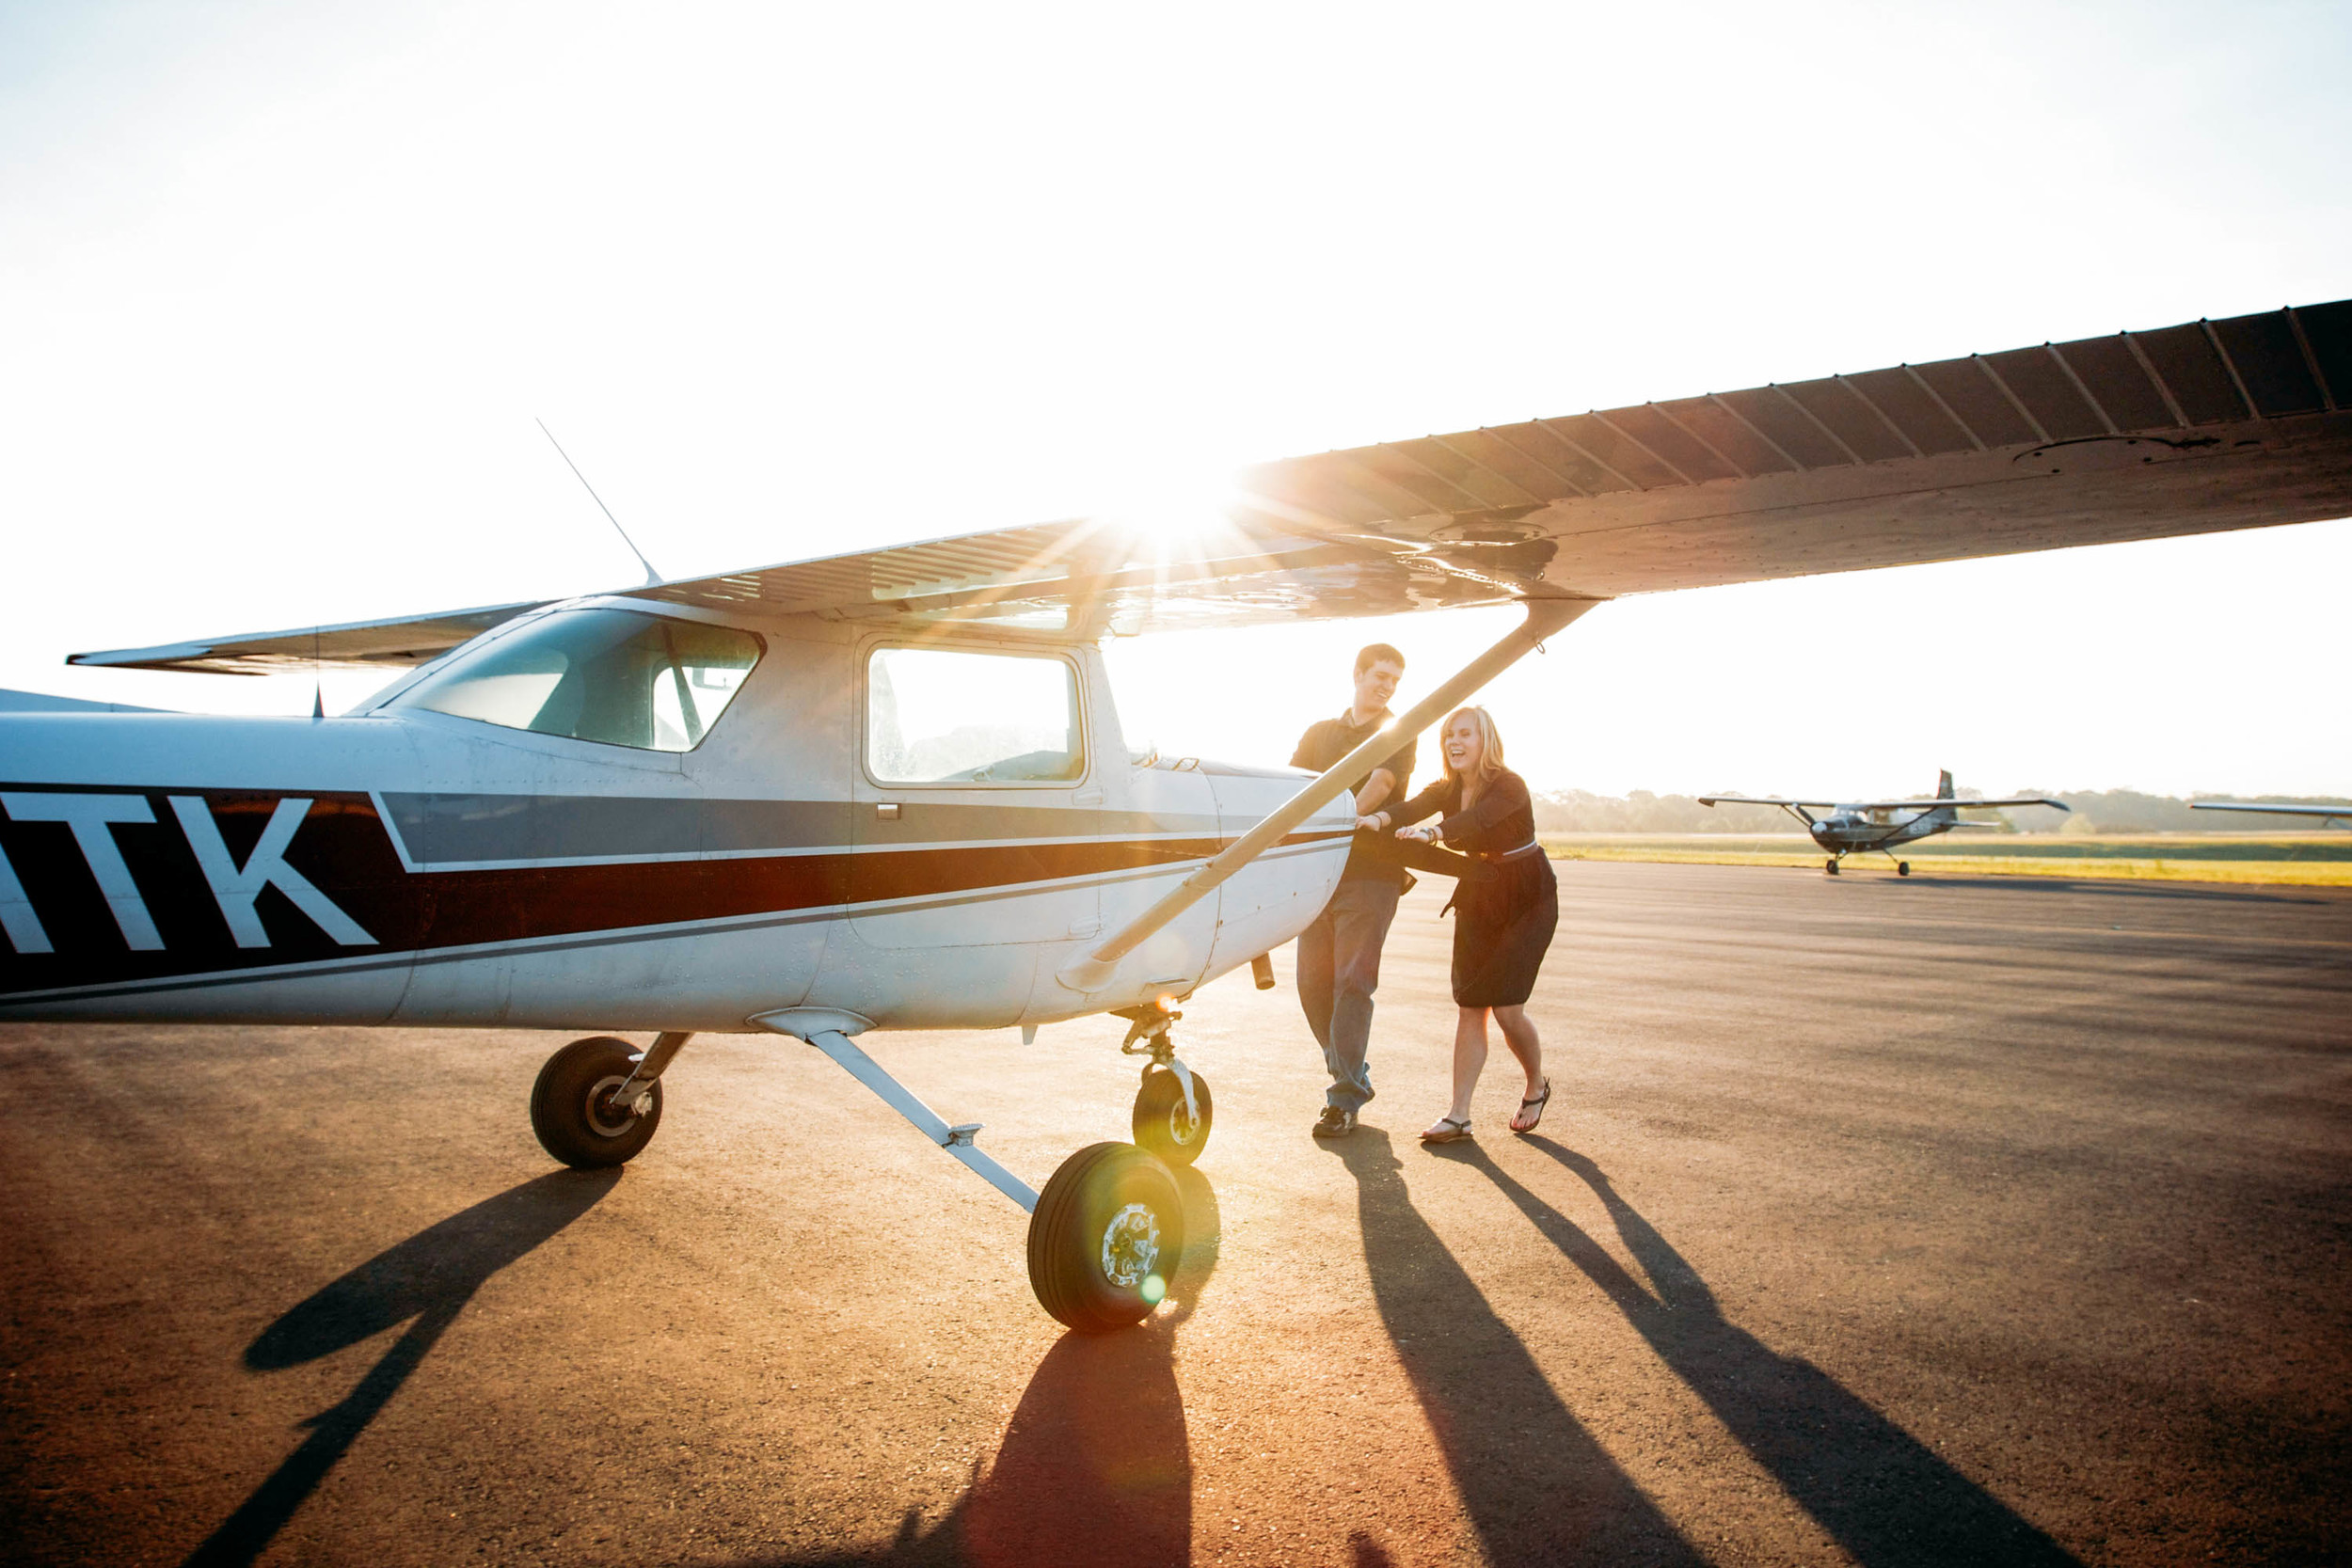 Wedding-Photographer-Engagement-Portrait-Maddie-and-Jared-Plane.jpg